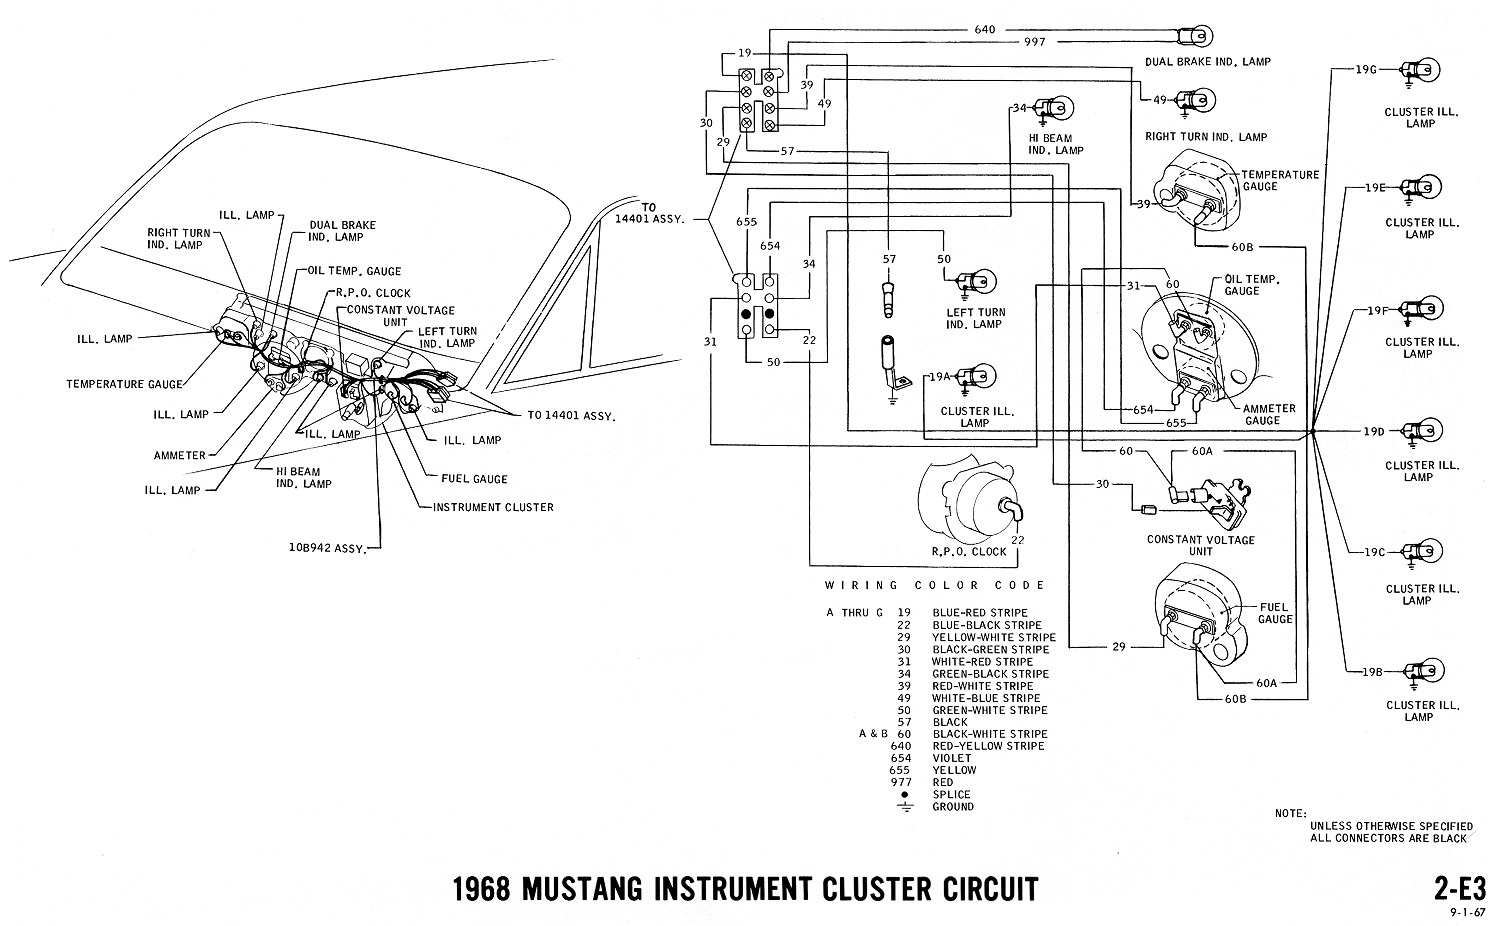 1968 mustang wiring diagrams and vacuum schematics average joe restoration 1987 Camaro Fuse Box Diagram 1987 Camaro Fuse Box Diagram